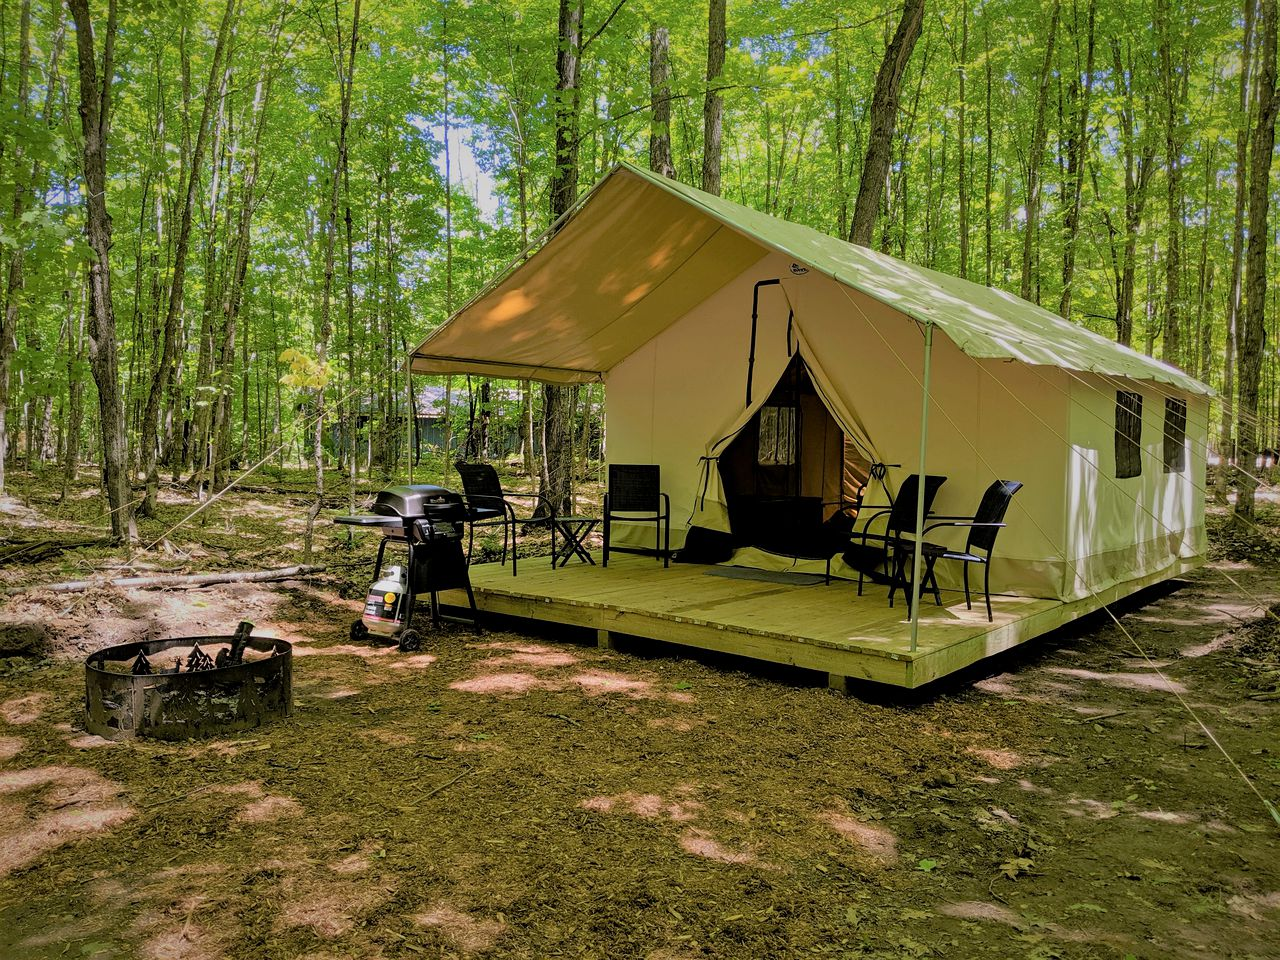 Safari Tents (Phelps, Wisconsin, United States)